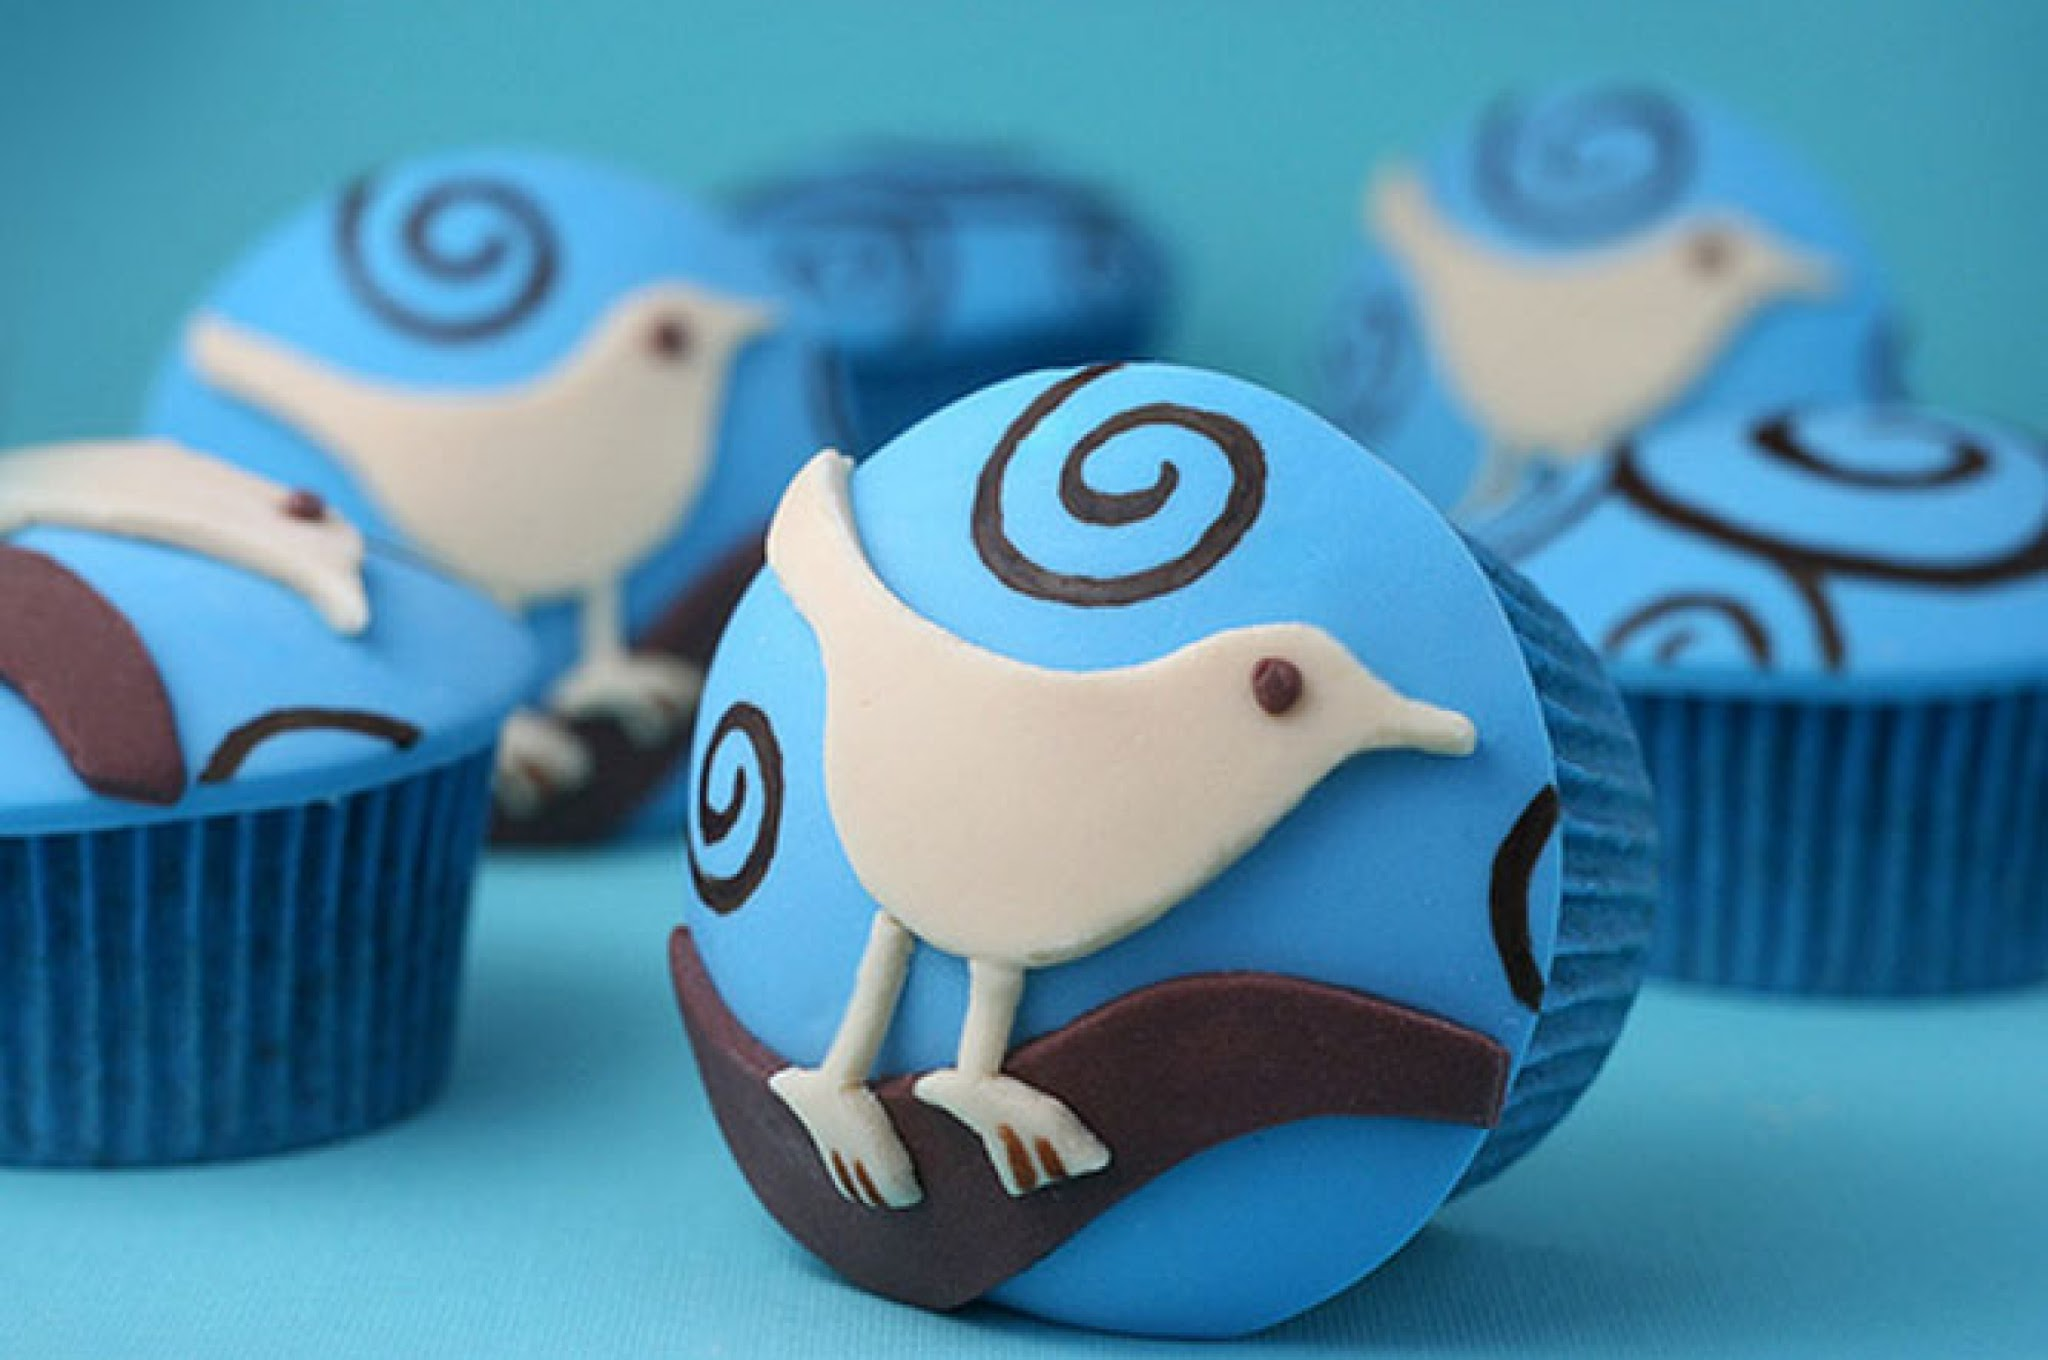 20+ Do's and Don'ts of Twitter Etiquette [INFOGRAPHIC]